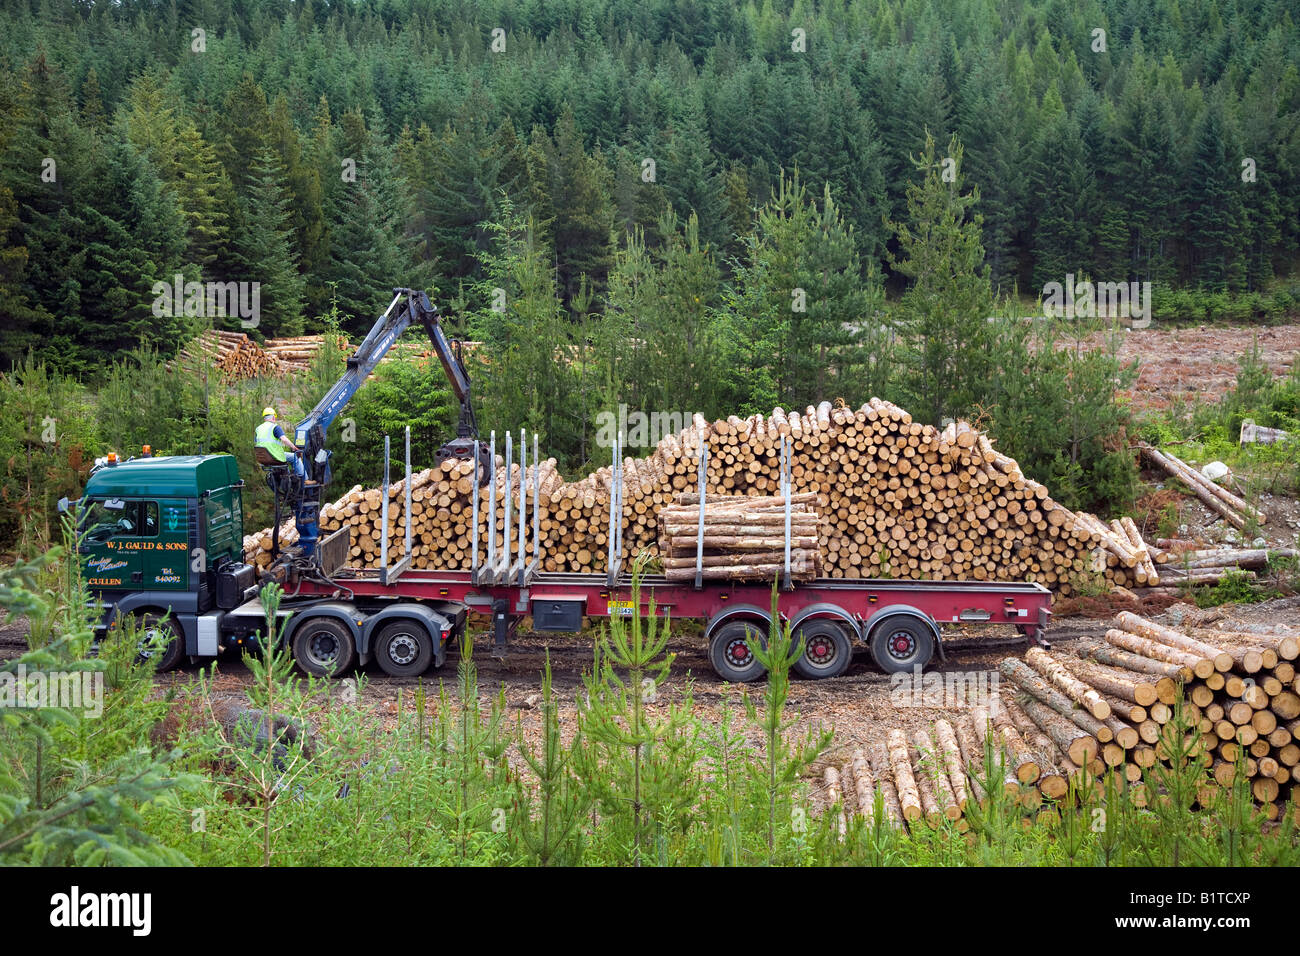 Harvesting Pine logs in Scottish Forest   Scottish Timber Industry   Harvesting Timber Invernesshire, Scotland uk Stock Photo